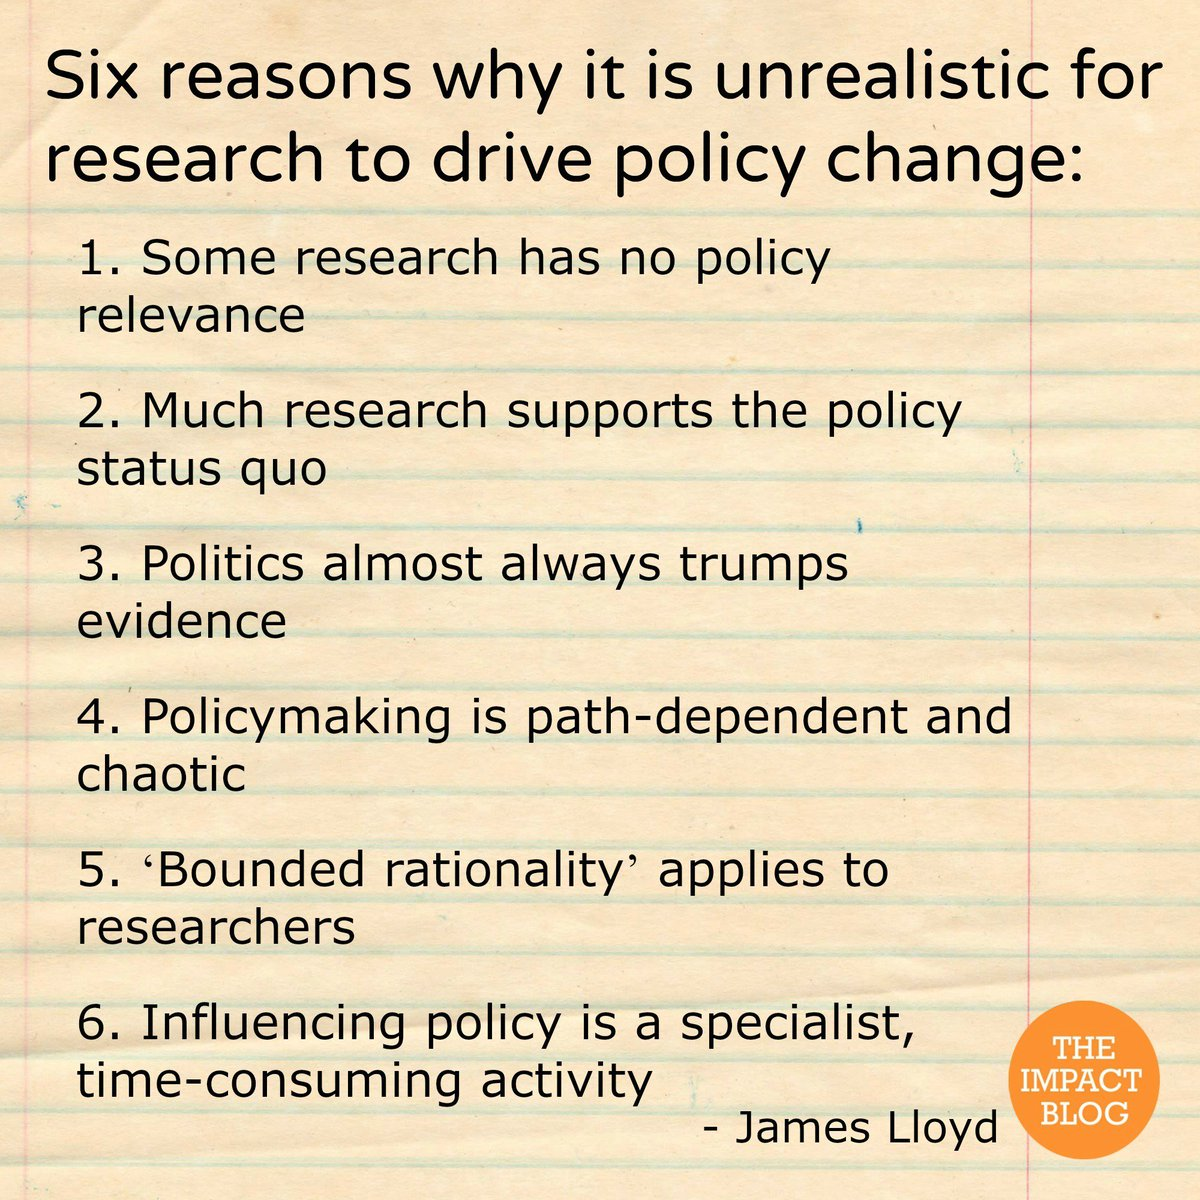 Should academics be expected to change policy? Today's post by @_james_lloyd https://t.co/LO72sTGAia https://t.co/92sNl26UEv